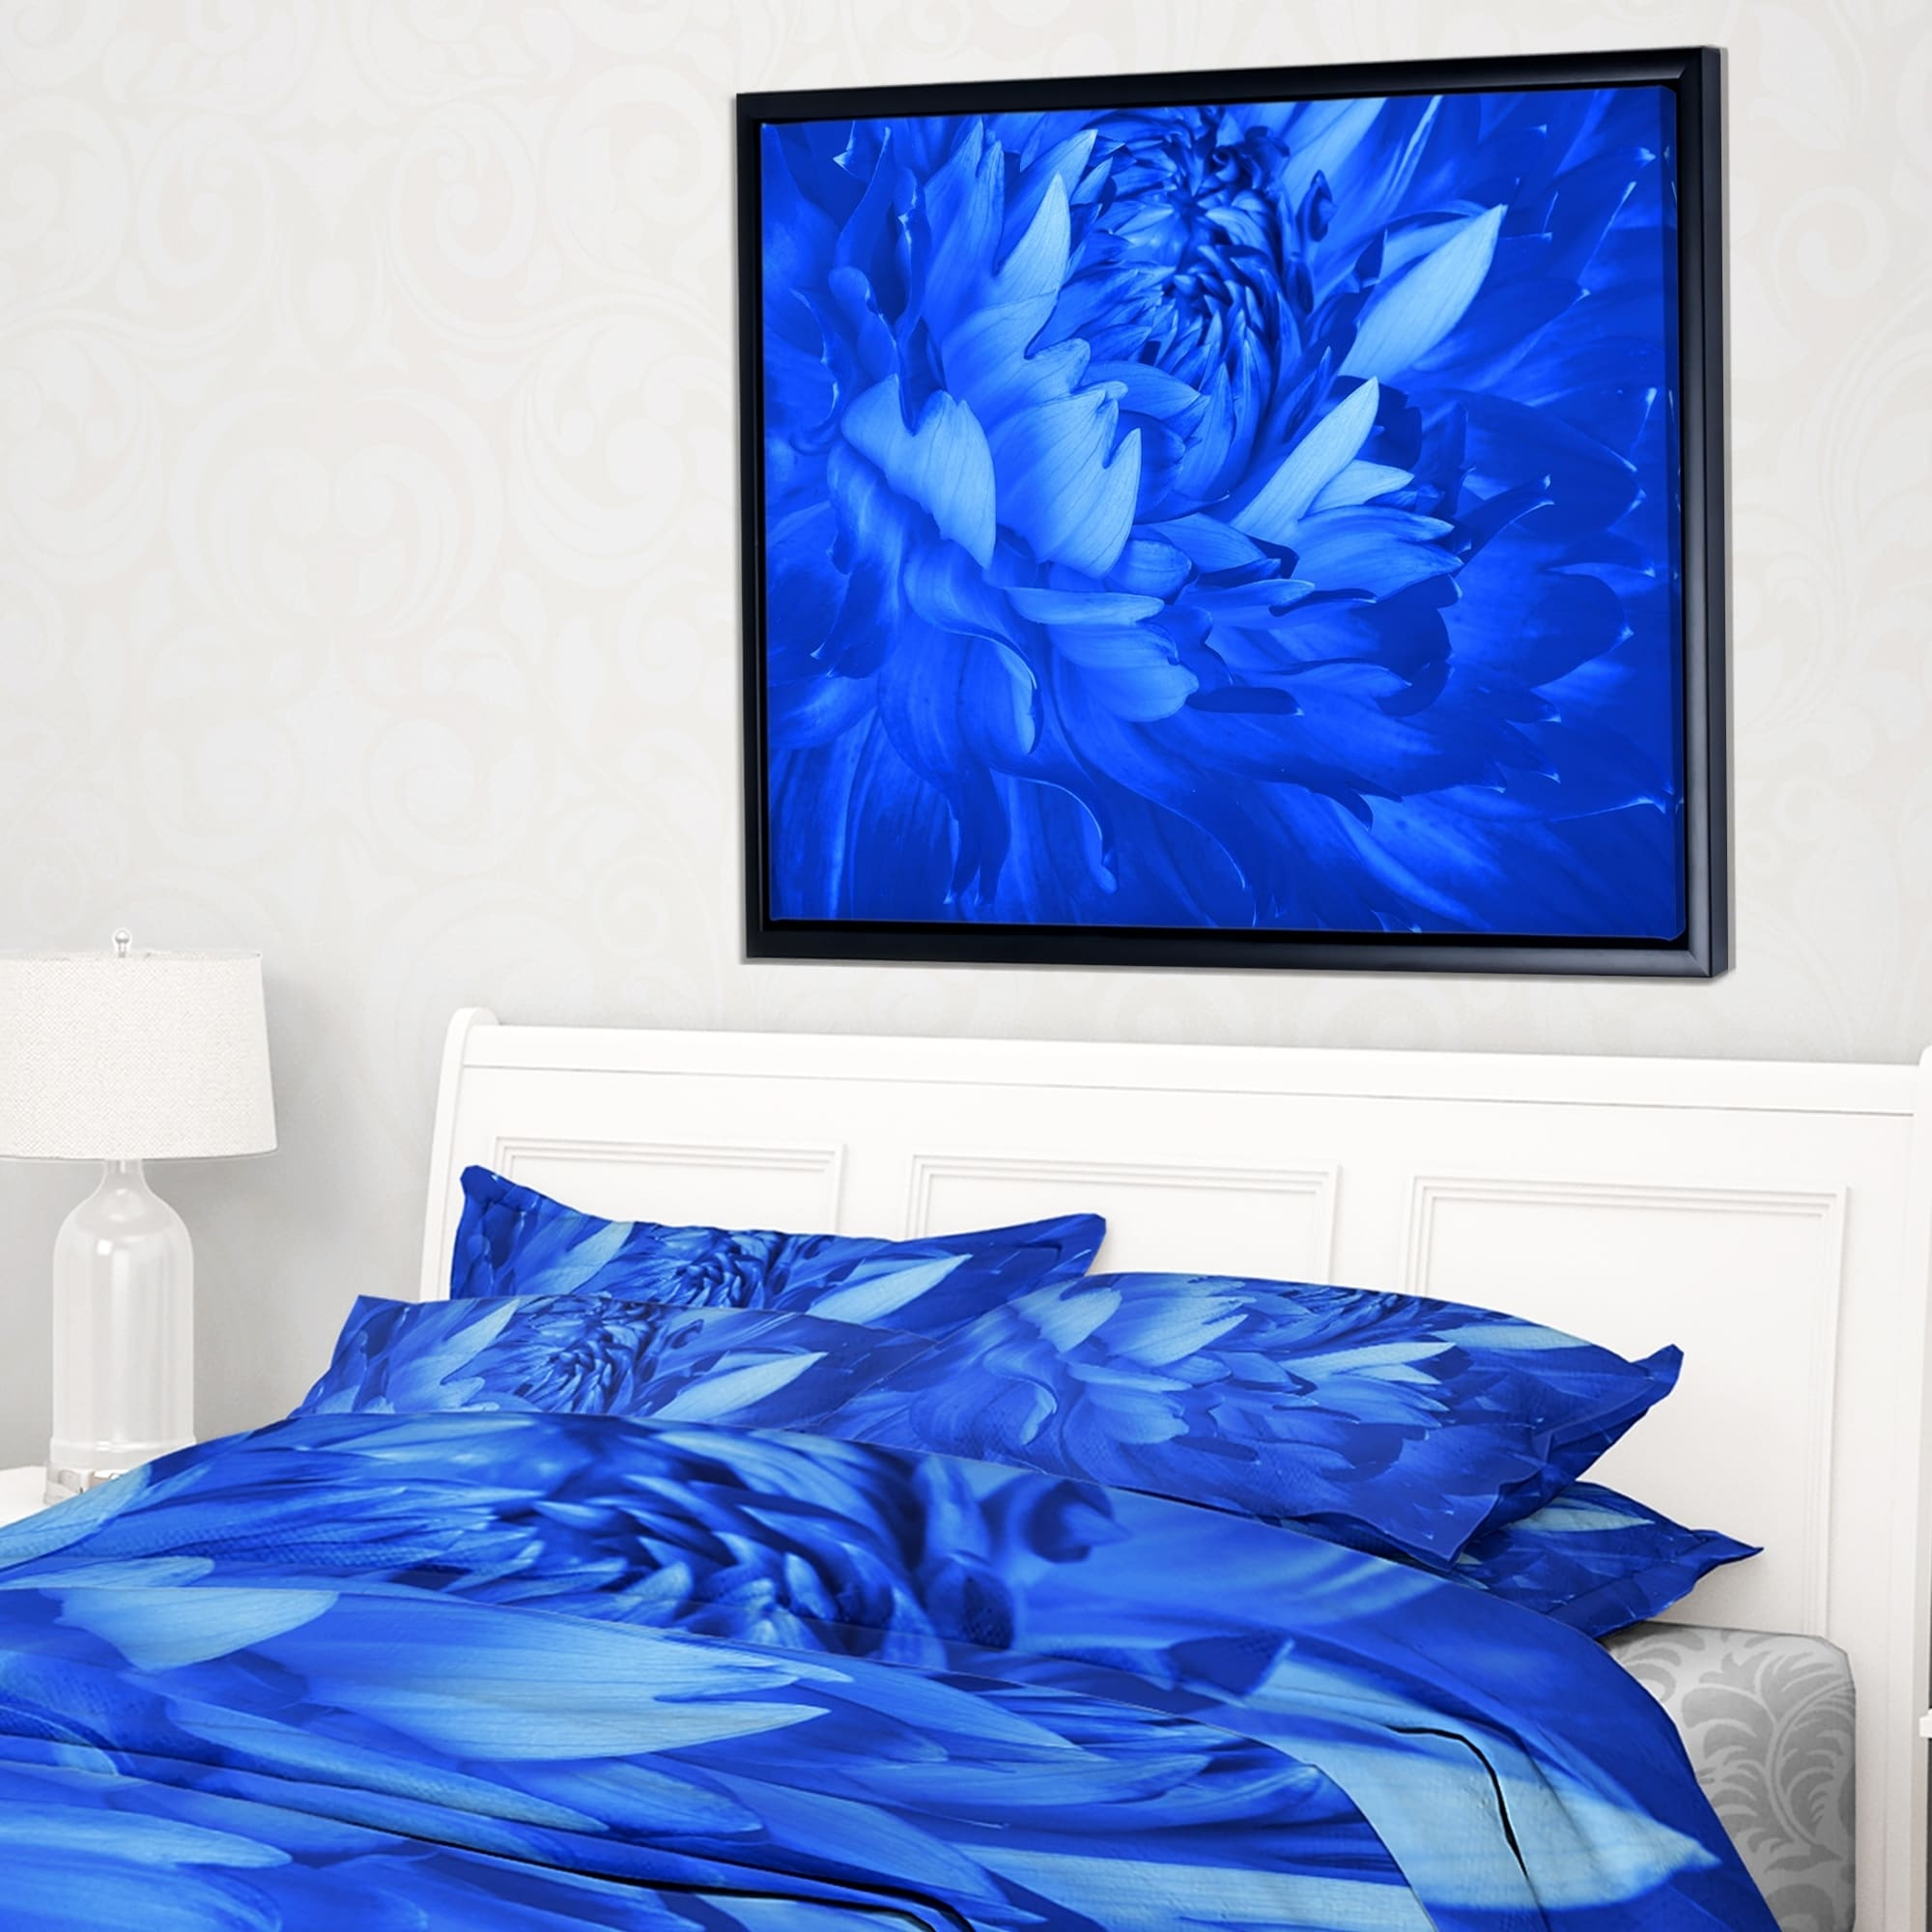 Shop designart bright blue flower petals floral framed canvas art shop designart bright blue flower petals floral framed canvas art print on sale free shipping today overstock 18959042 izmirmasajfo